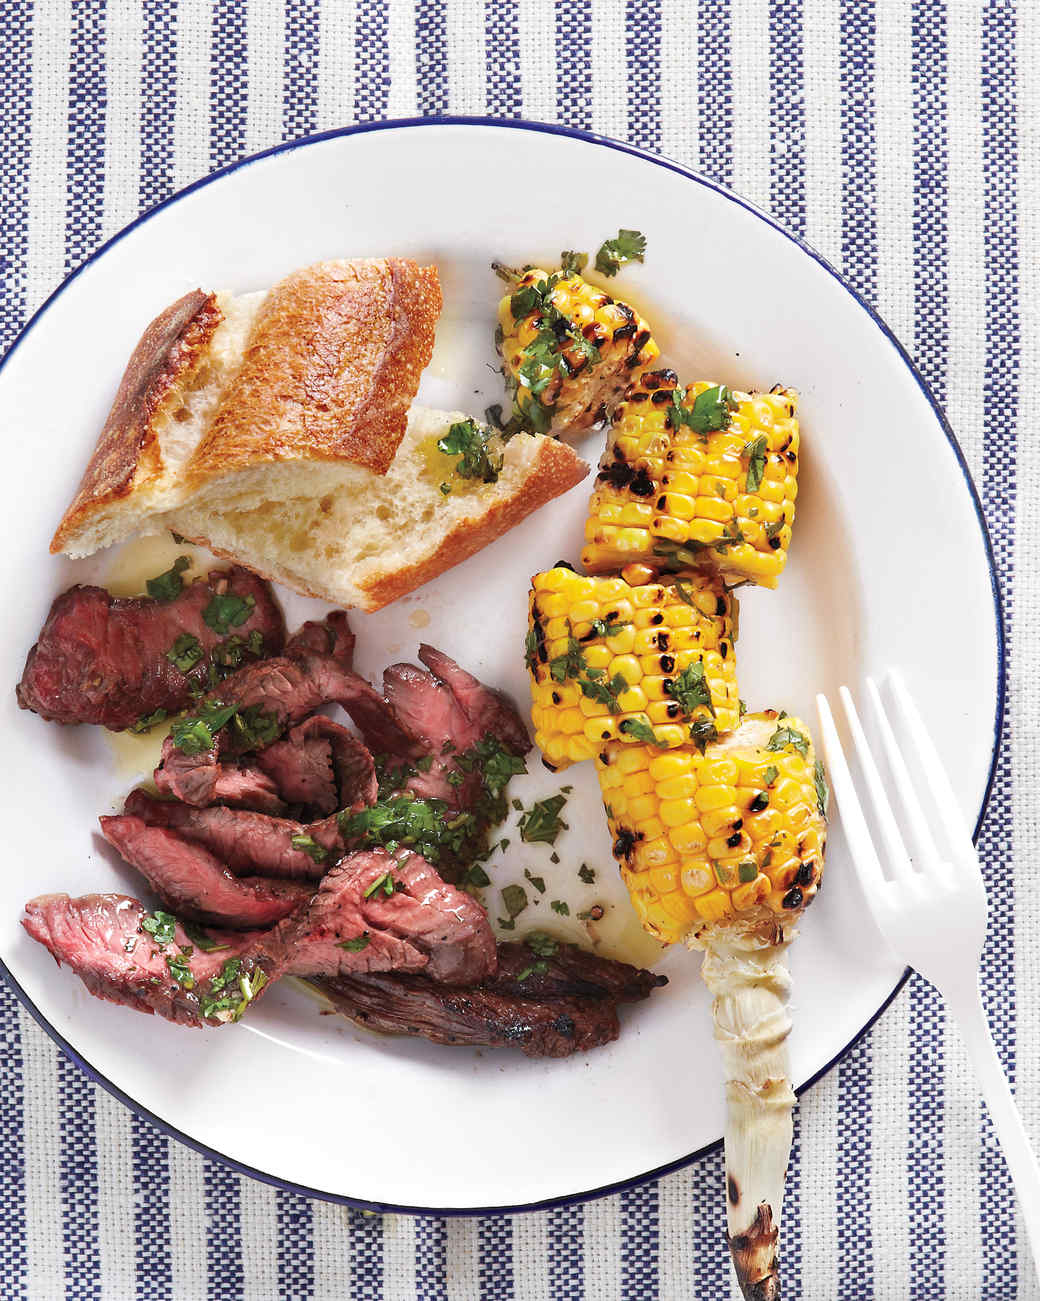 grilled-skirt-steak-corn-plated-0390-d111118.jpg